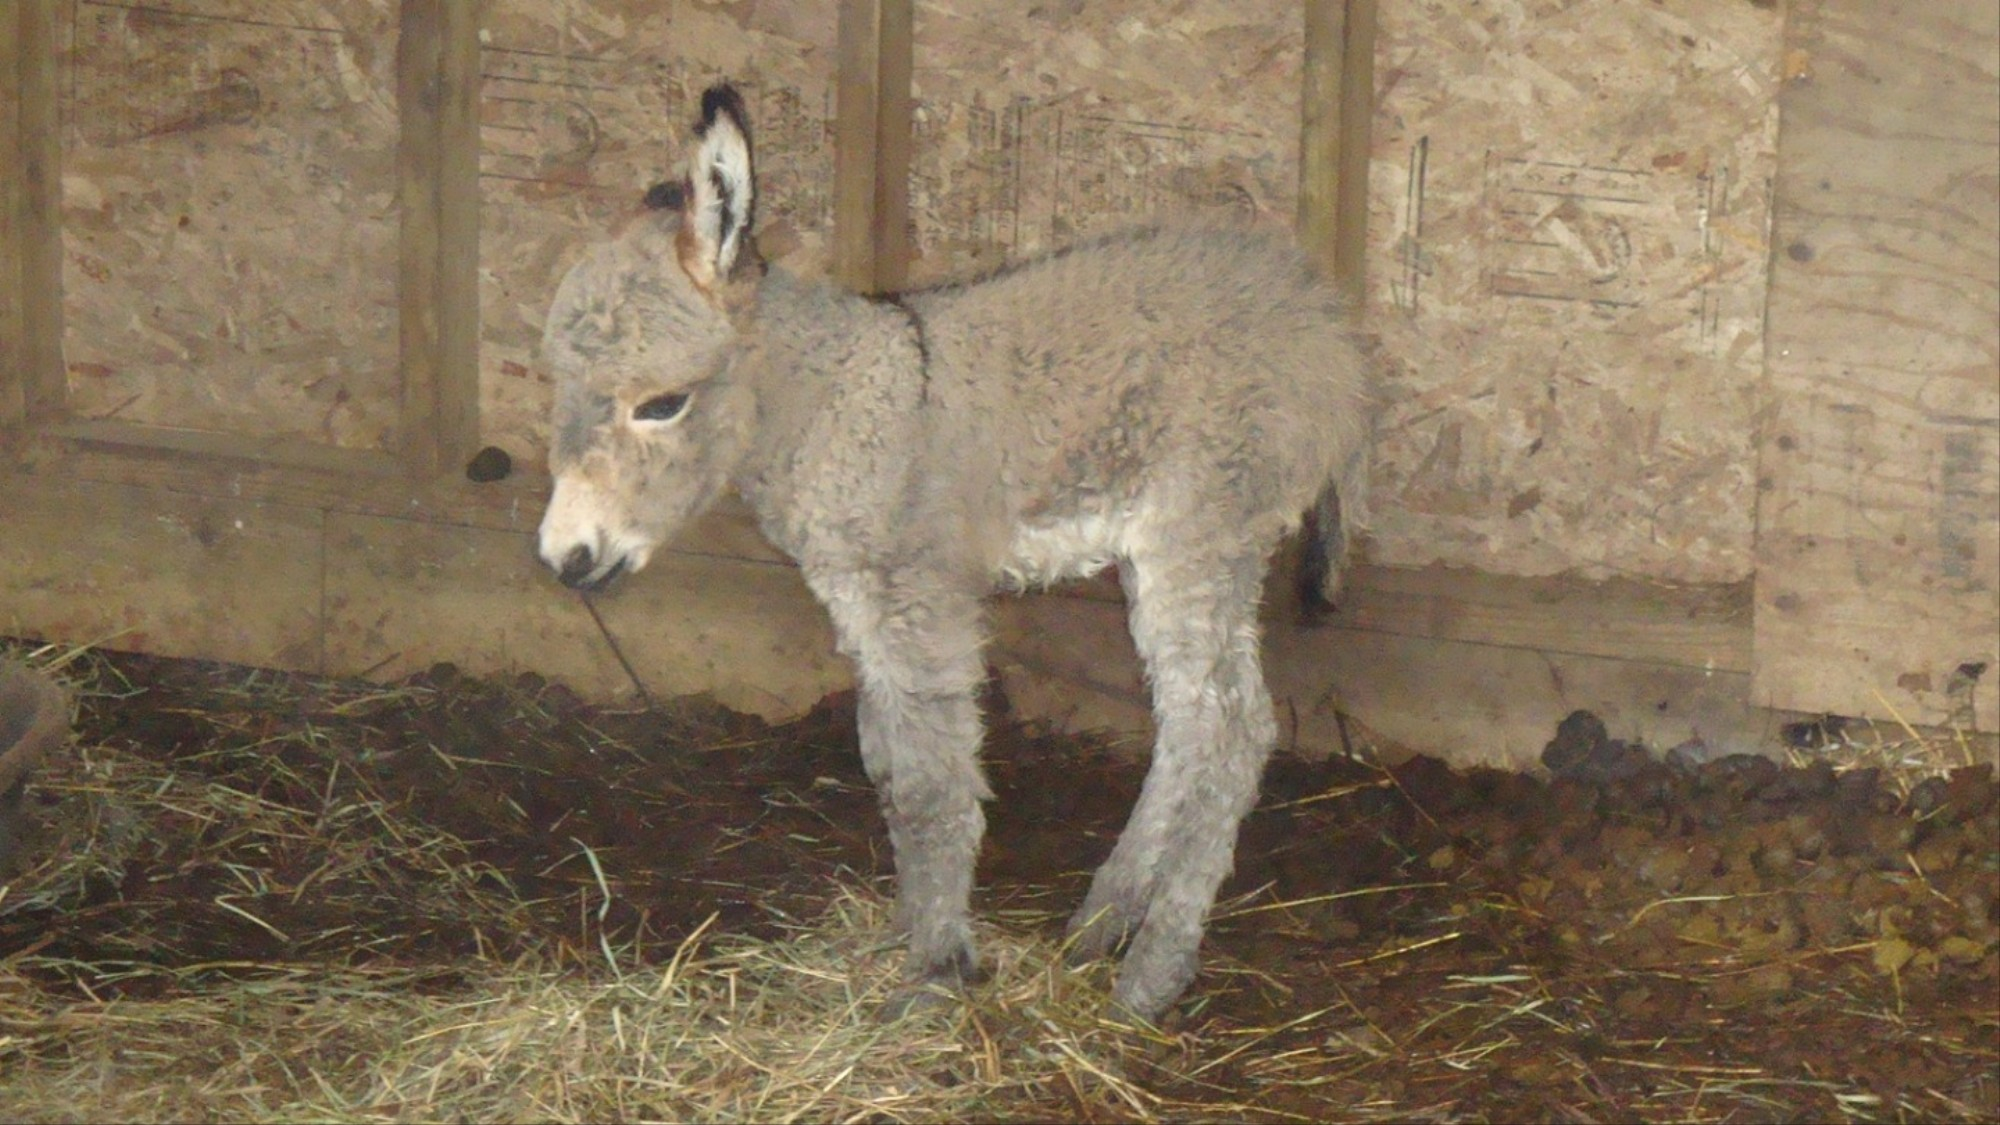 Here's a Heartwarming Story of a Miniature Donkey Being Rescued from